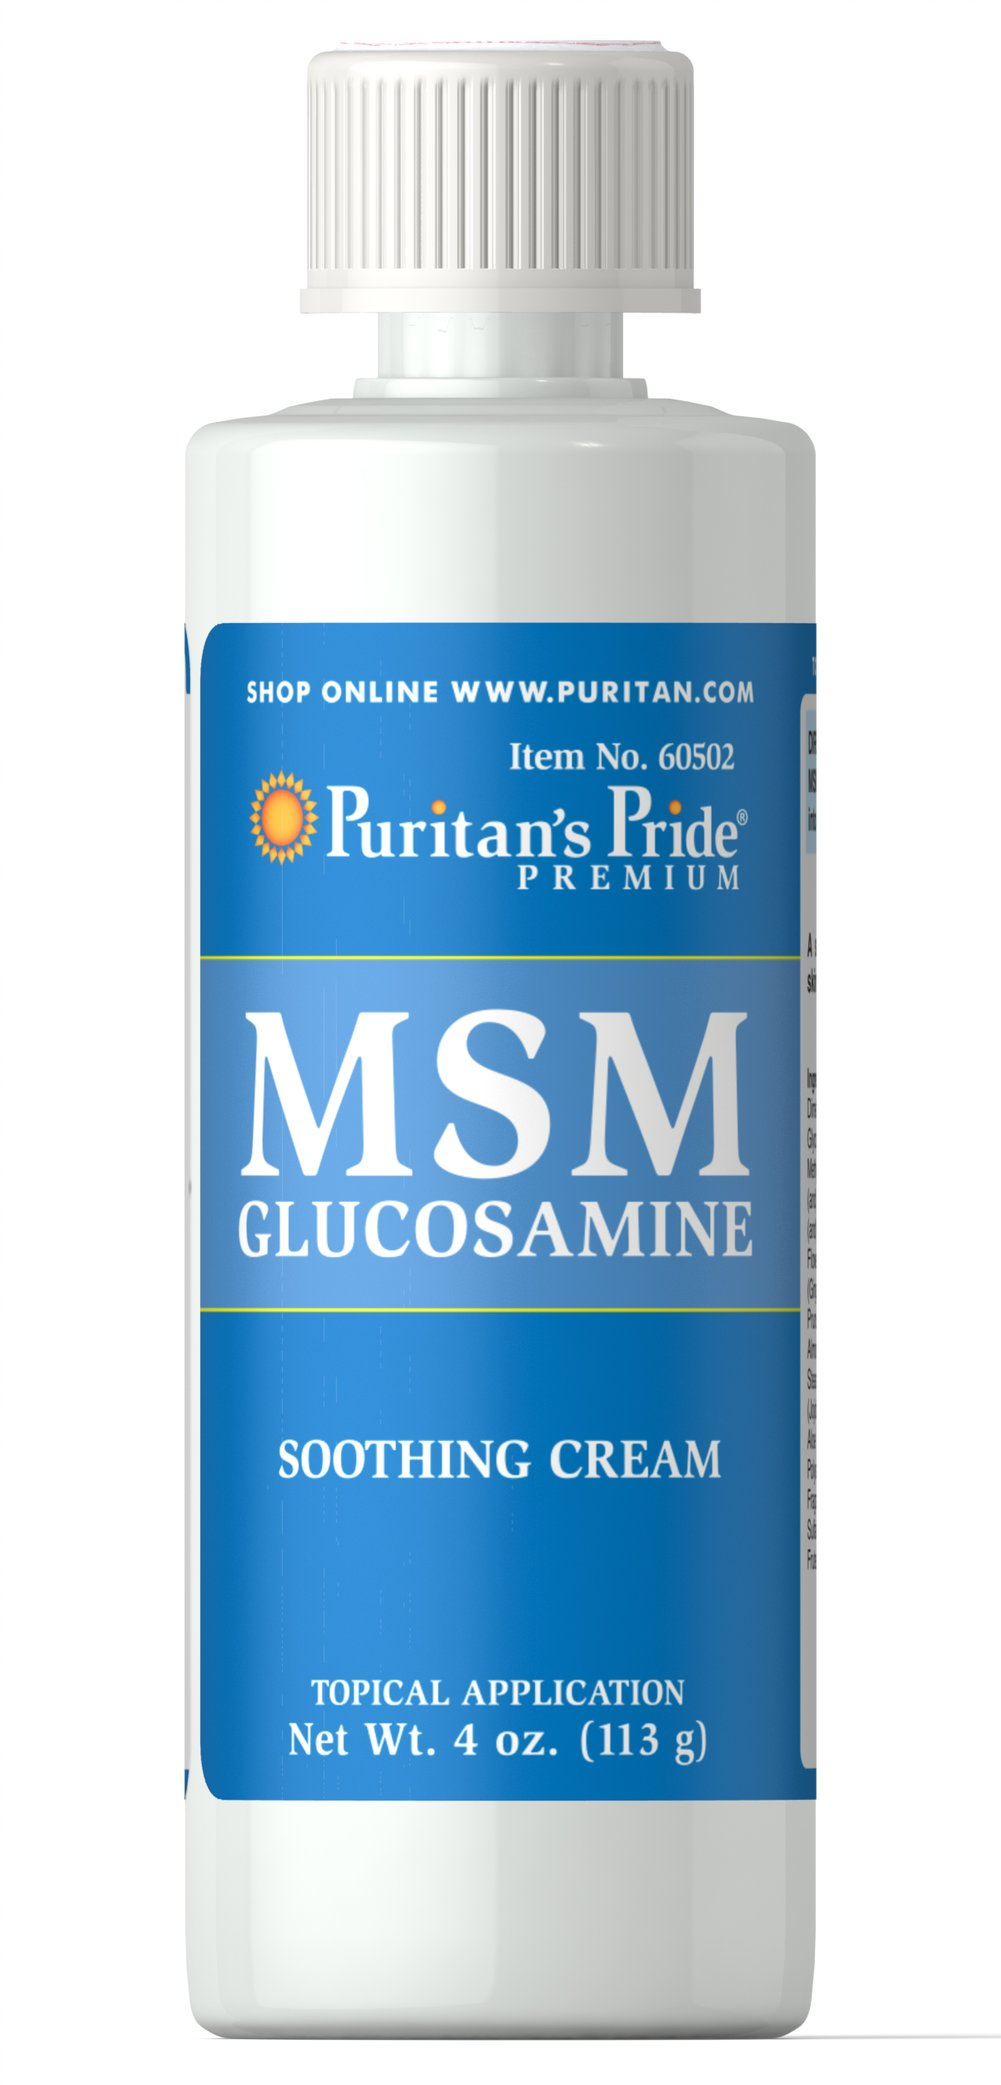 MSM Glucosamine Cream <p>A soothing cream for the skin and joints.  Gently massage <strong>MSM with Glucosamine Cream</strong> into the skin as required, or follow the advice of your health care professional.</p><p></p> 4 oz Cream